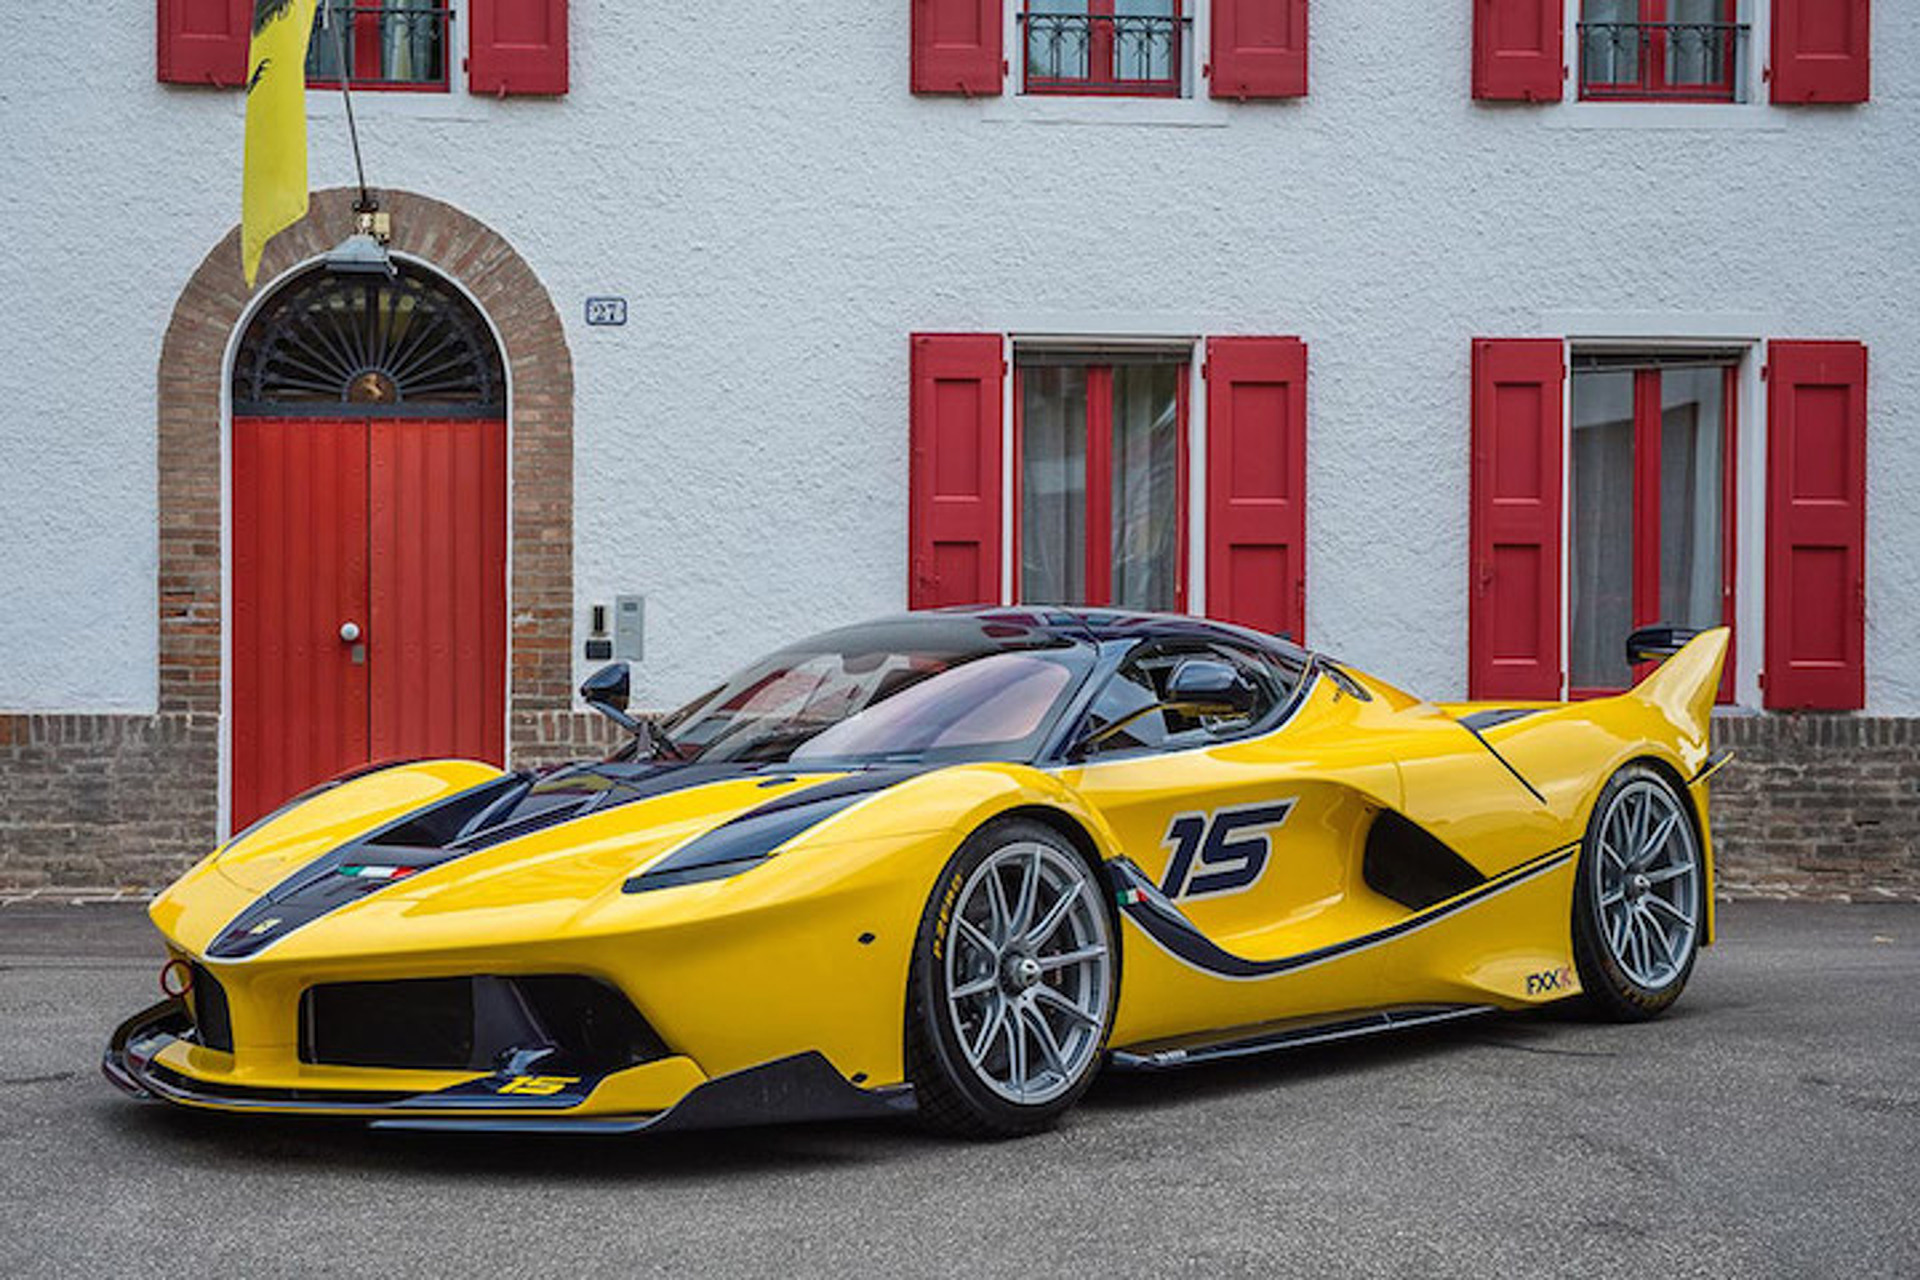 Google Exec Surprises His Wife With a $2.7M LaFerrari FXX K Hypercar